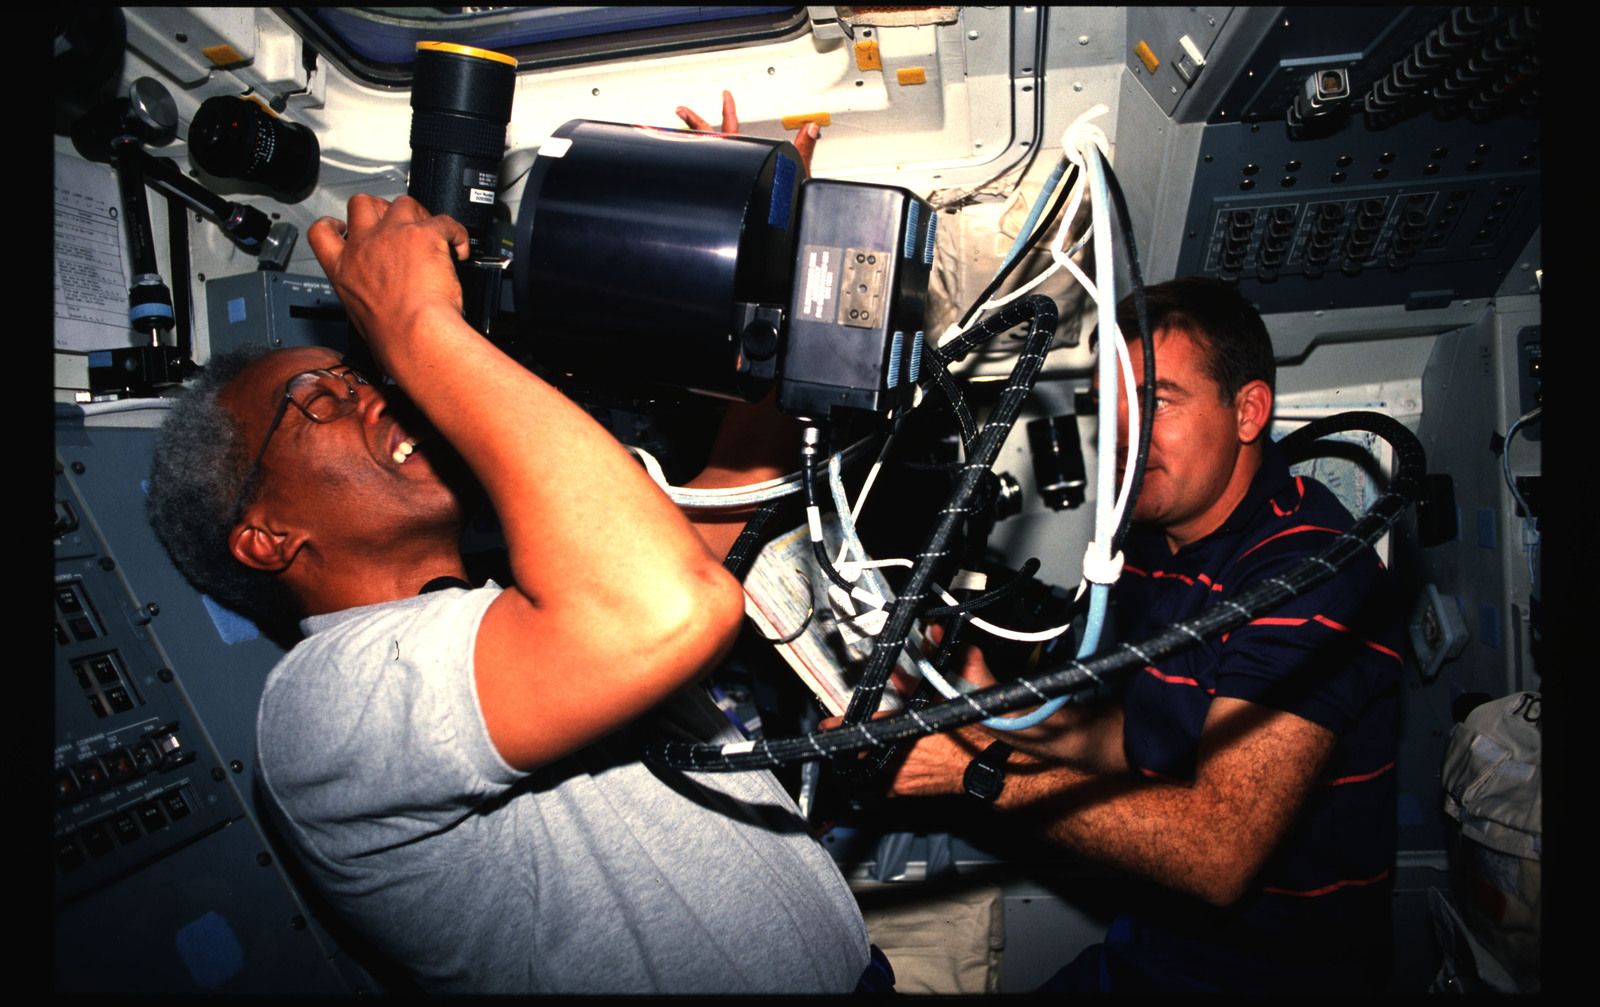 STS053-239-009 - STS-053 - Crewmembers using the HERCULES photographic system